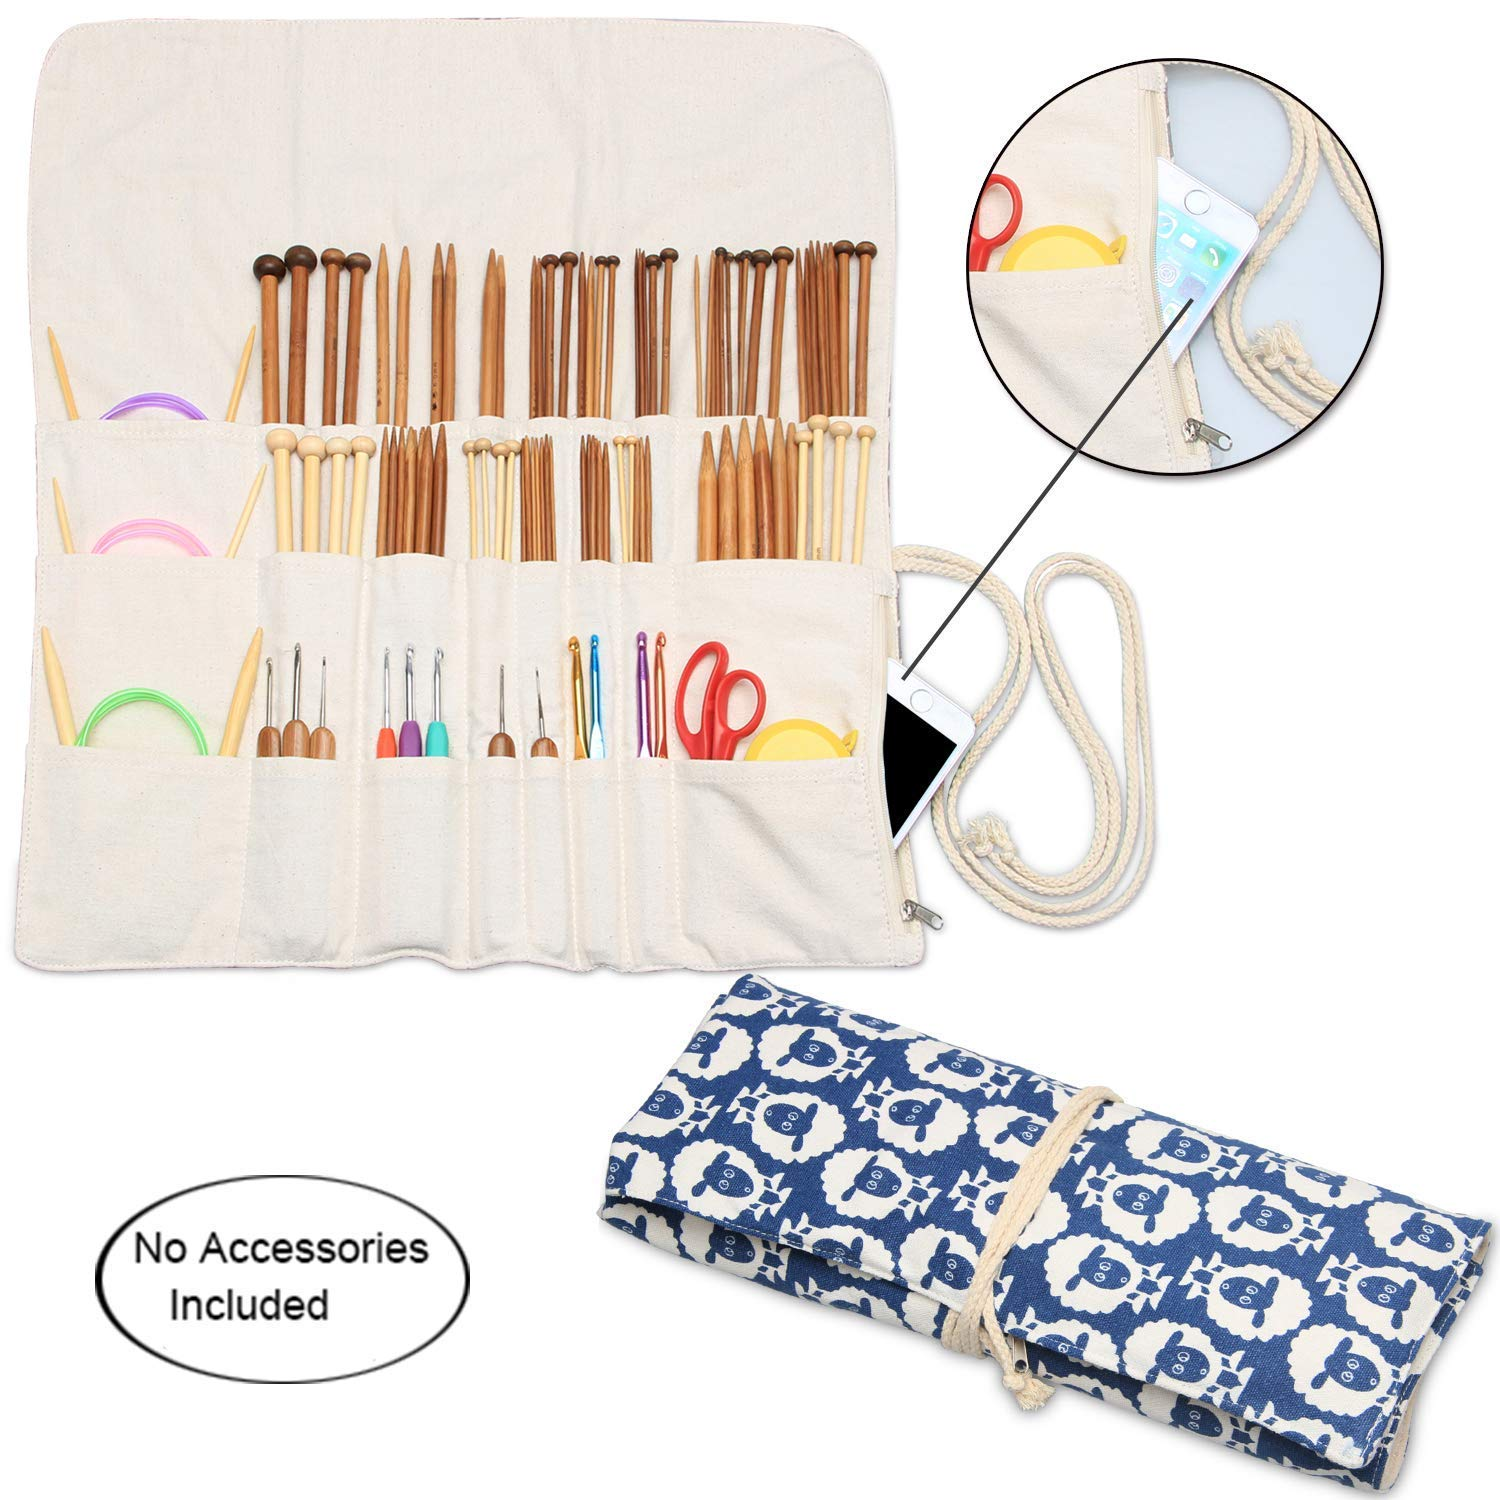 Teamoy Knitting Needles Holder Case(up to 14 Inches), Cotton Canvas Rolling Organizer for Straight and Circular Knitting Needles, Crochet Hooks and Accessories, Sheep - NO Accessories Included